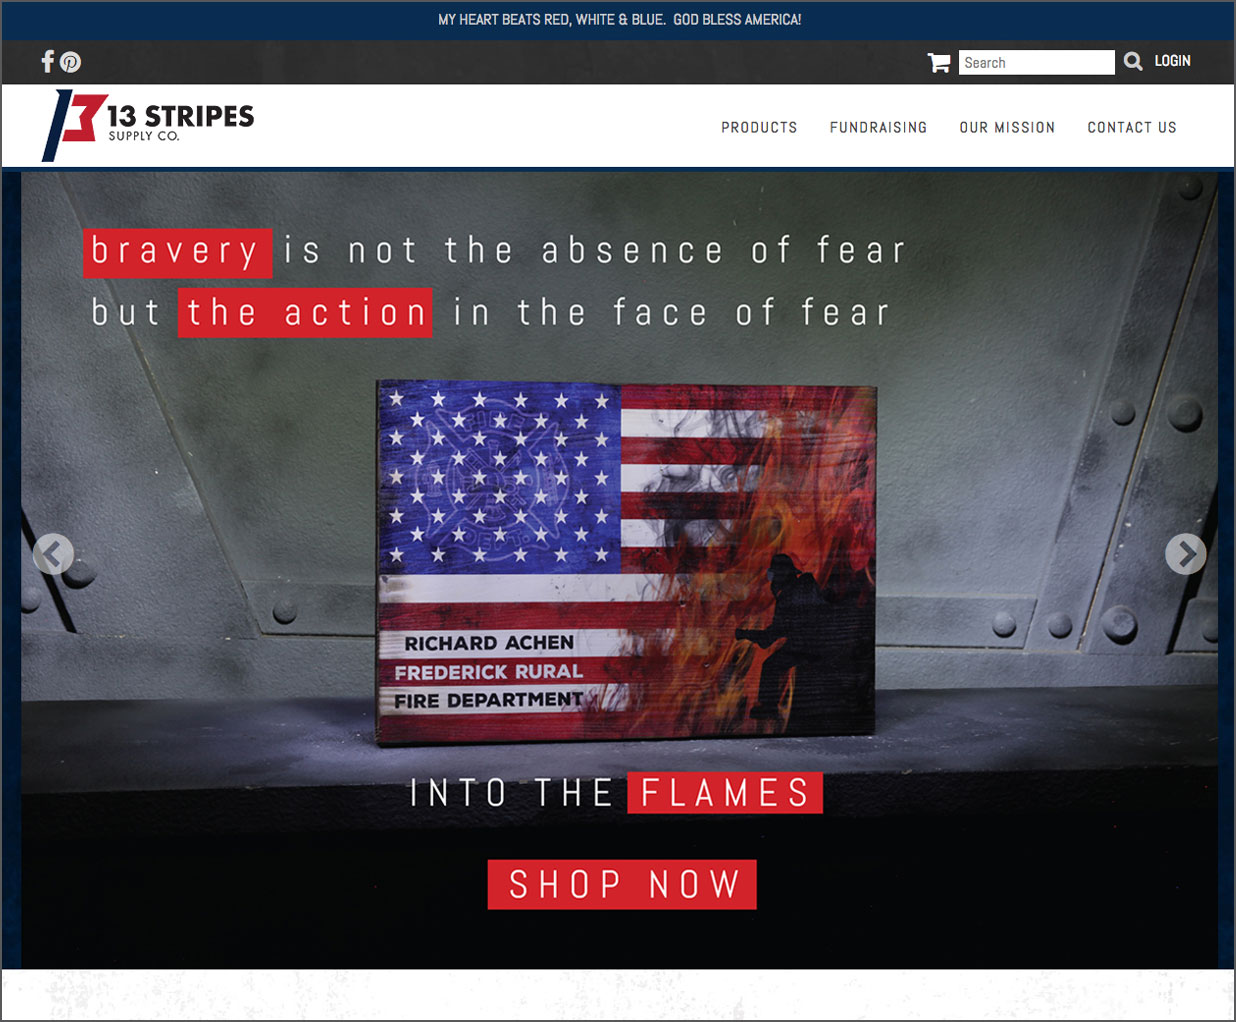 13 Stripes website